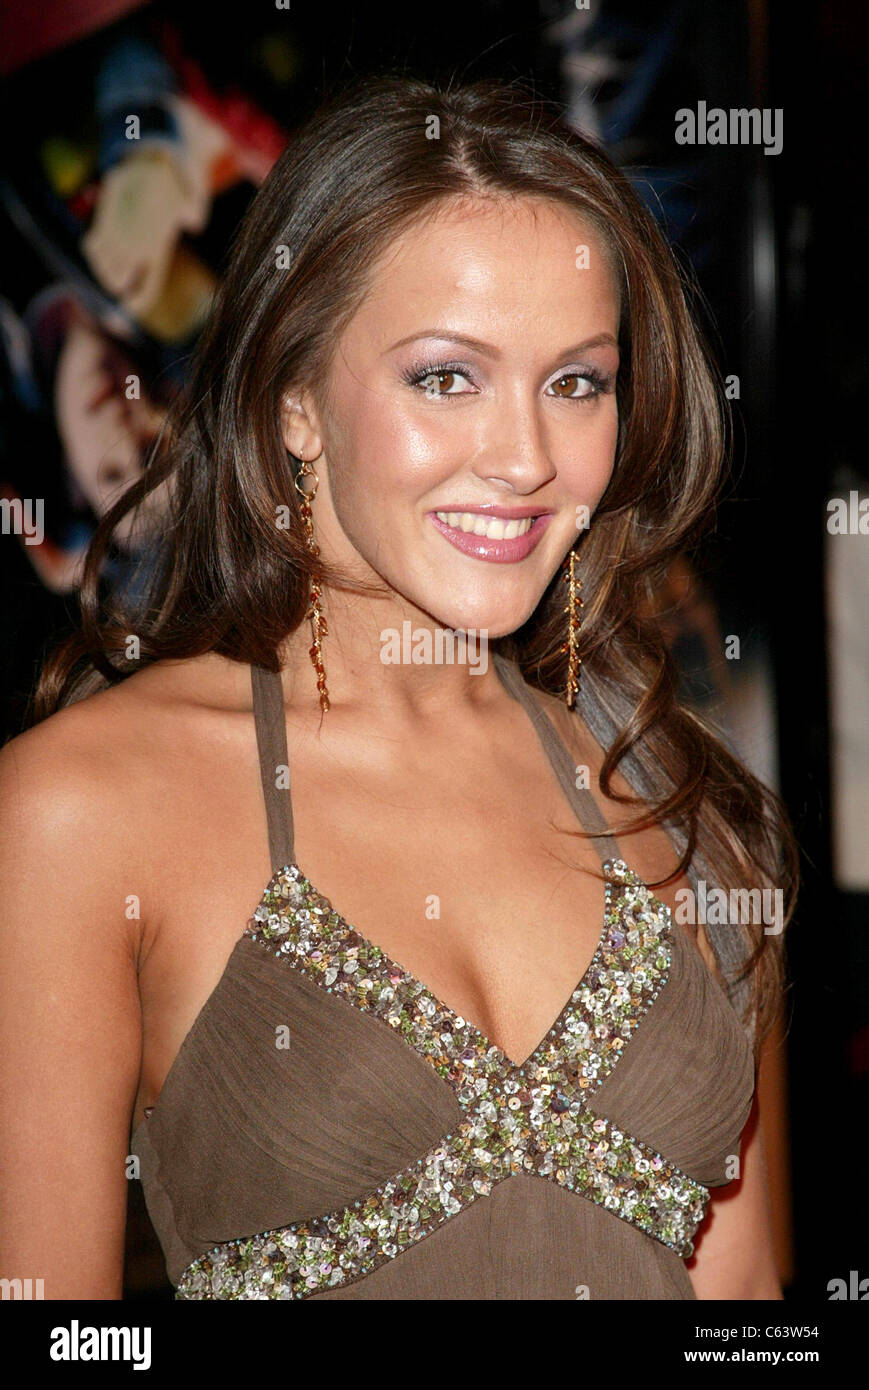 Crystal Lowe at arrivals for FINAL DESTINATION 3 Premiere, Grauman's Chinese Theatre, Los Angeles, CA, February - Stock Image